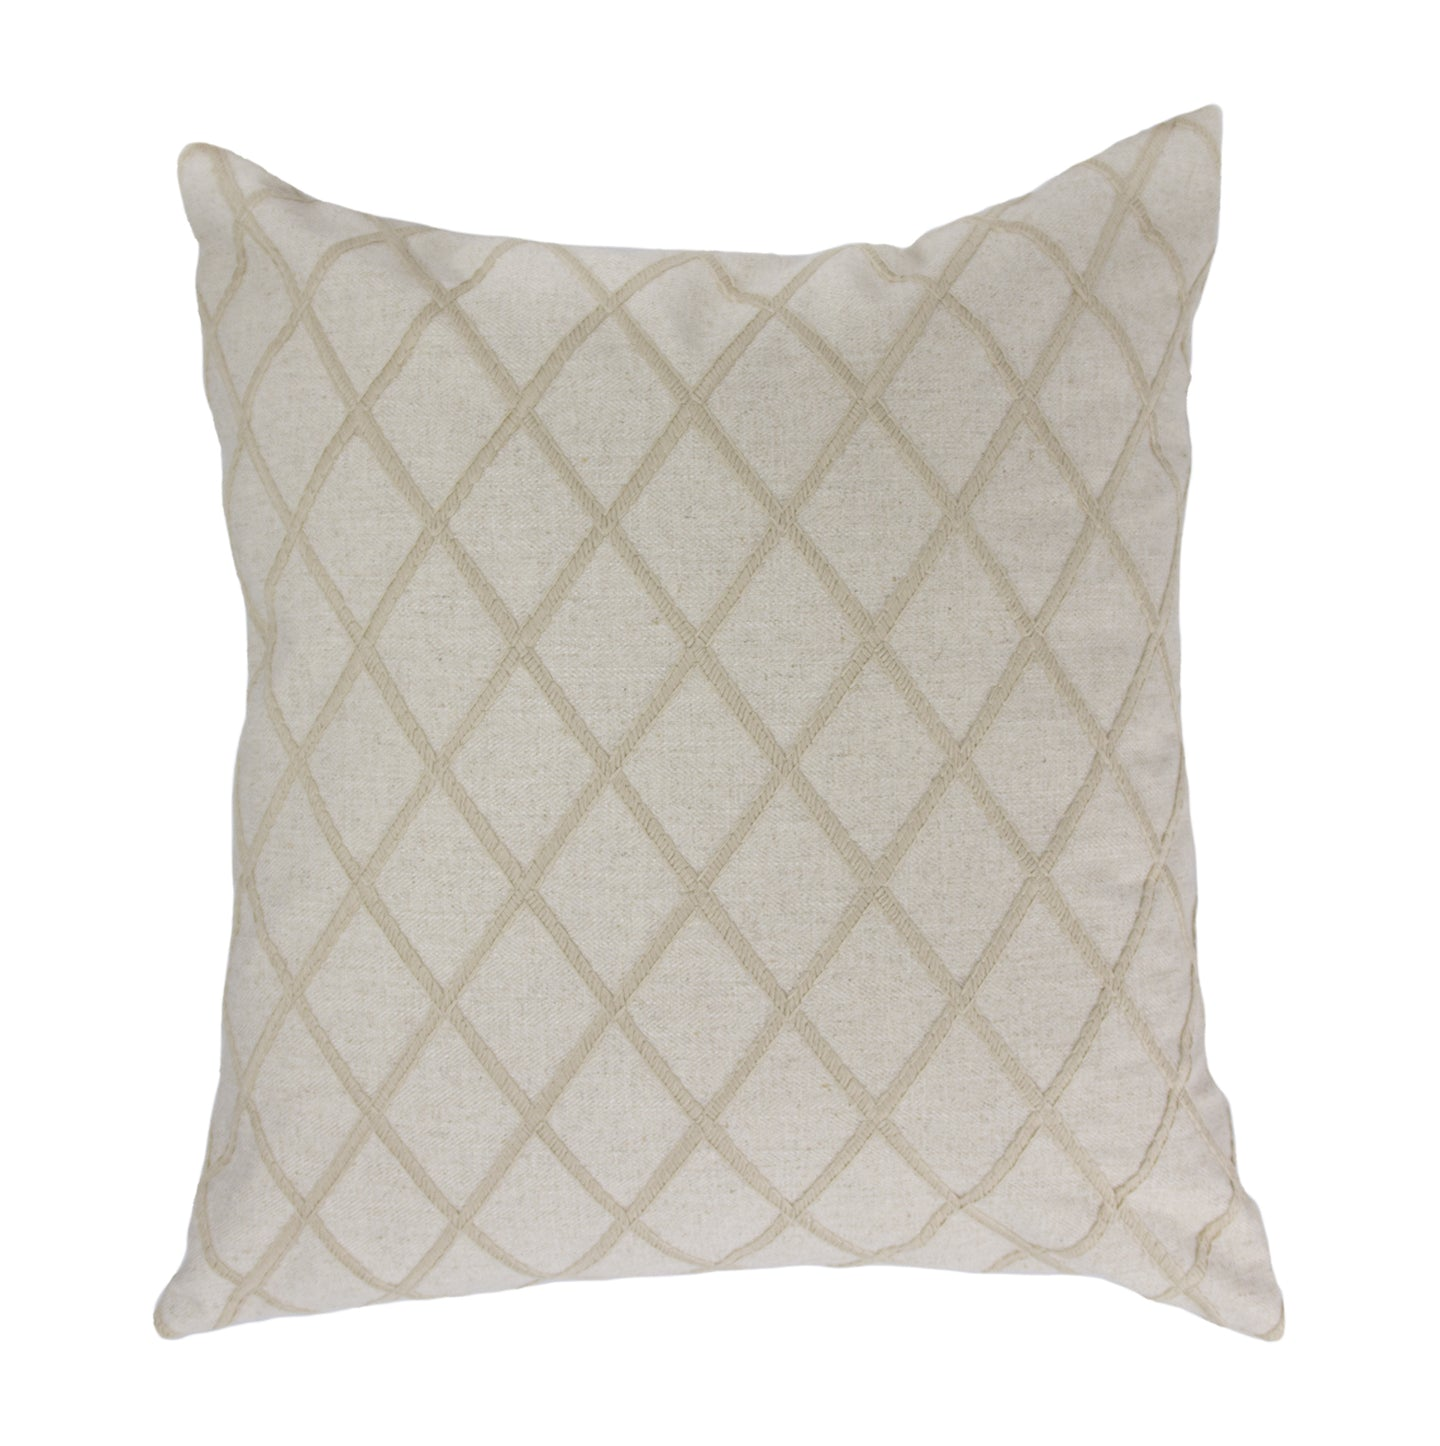 24x24 & 22x22 - Beige Woven w/Embroidered Diamonds Pillow Cover